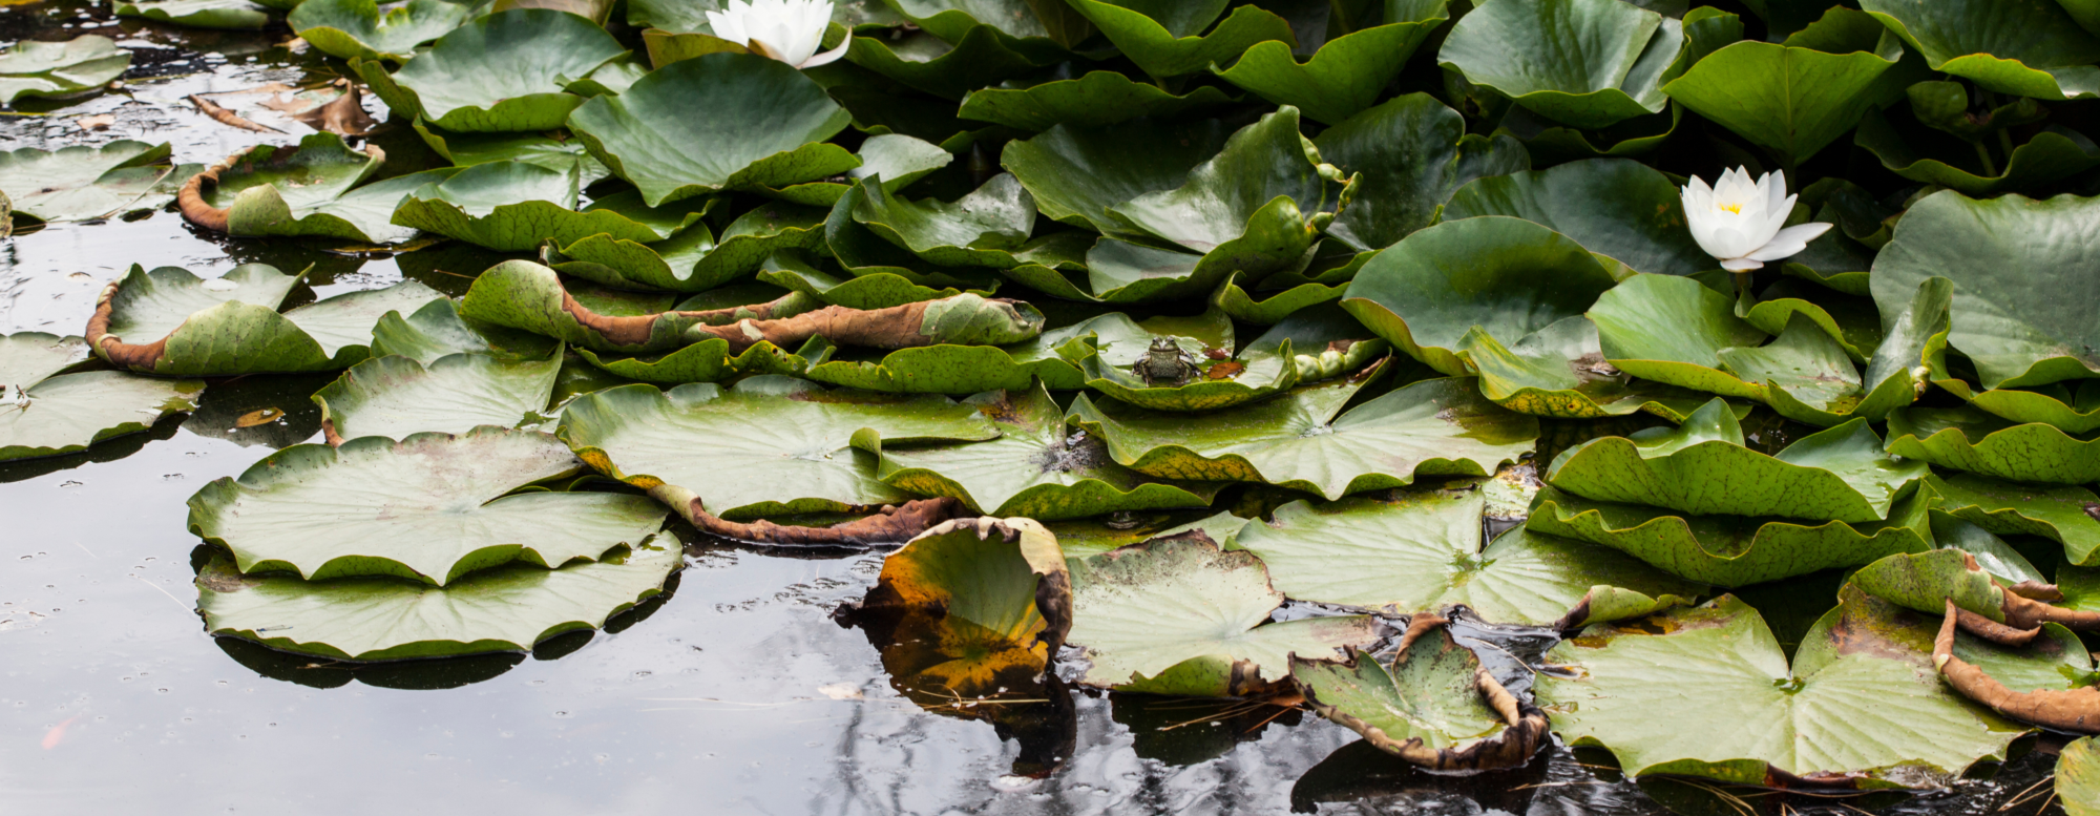 Pond with lily pads